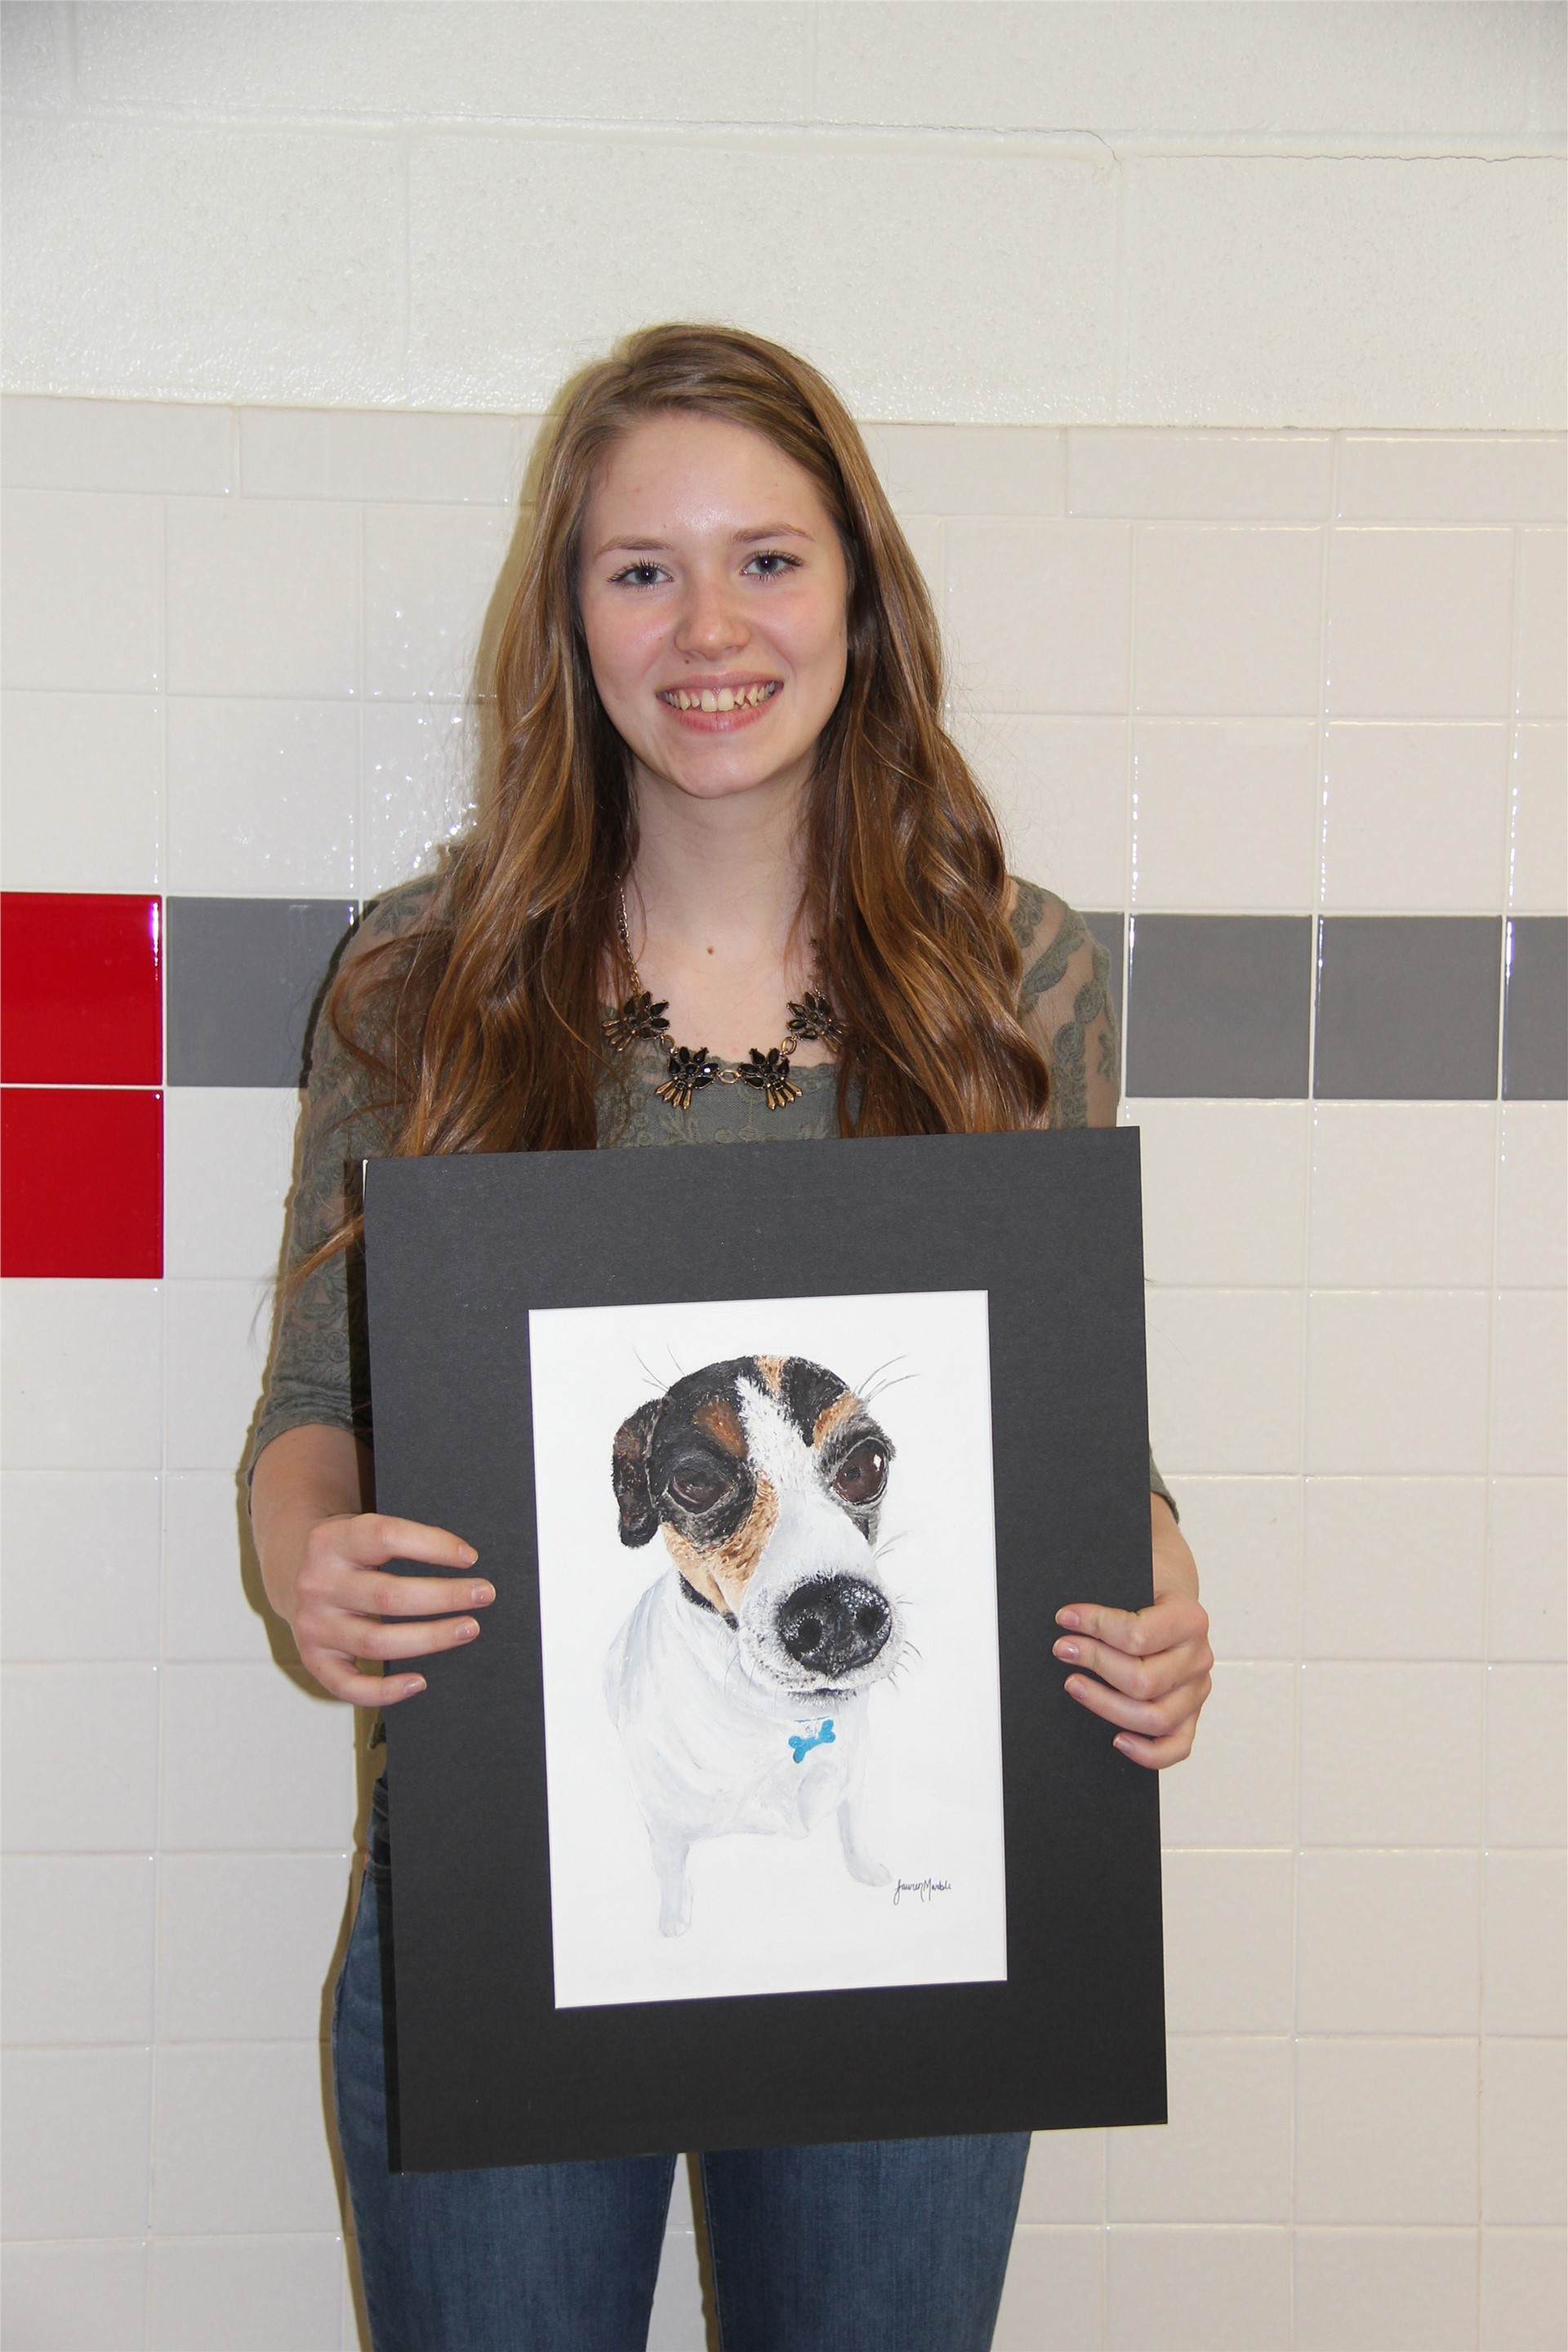 student holding illustration of dog